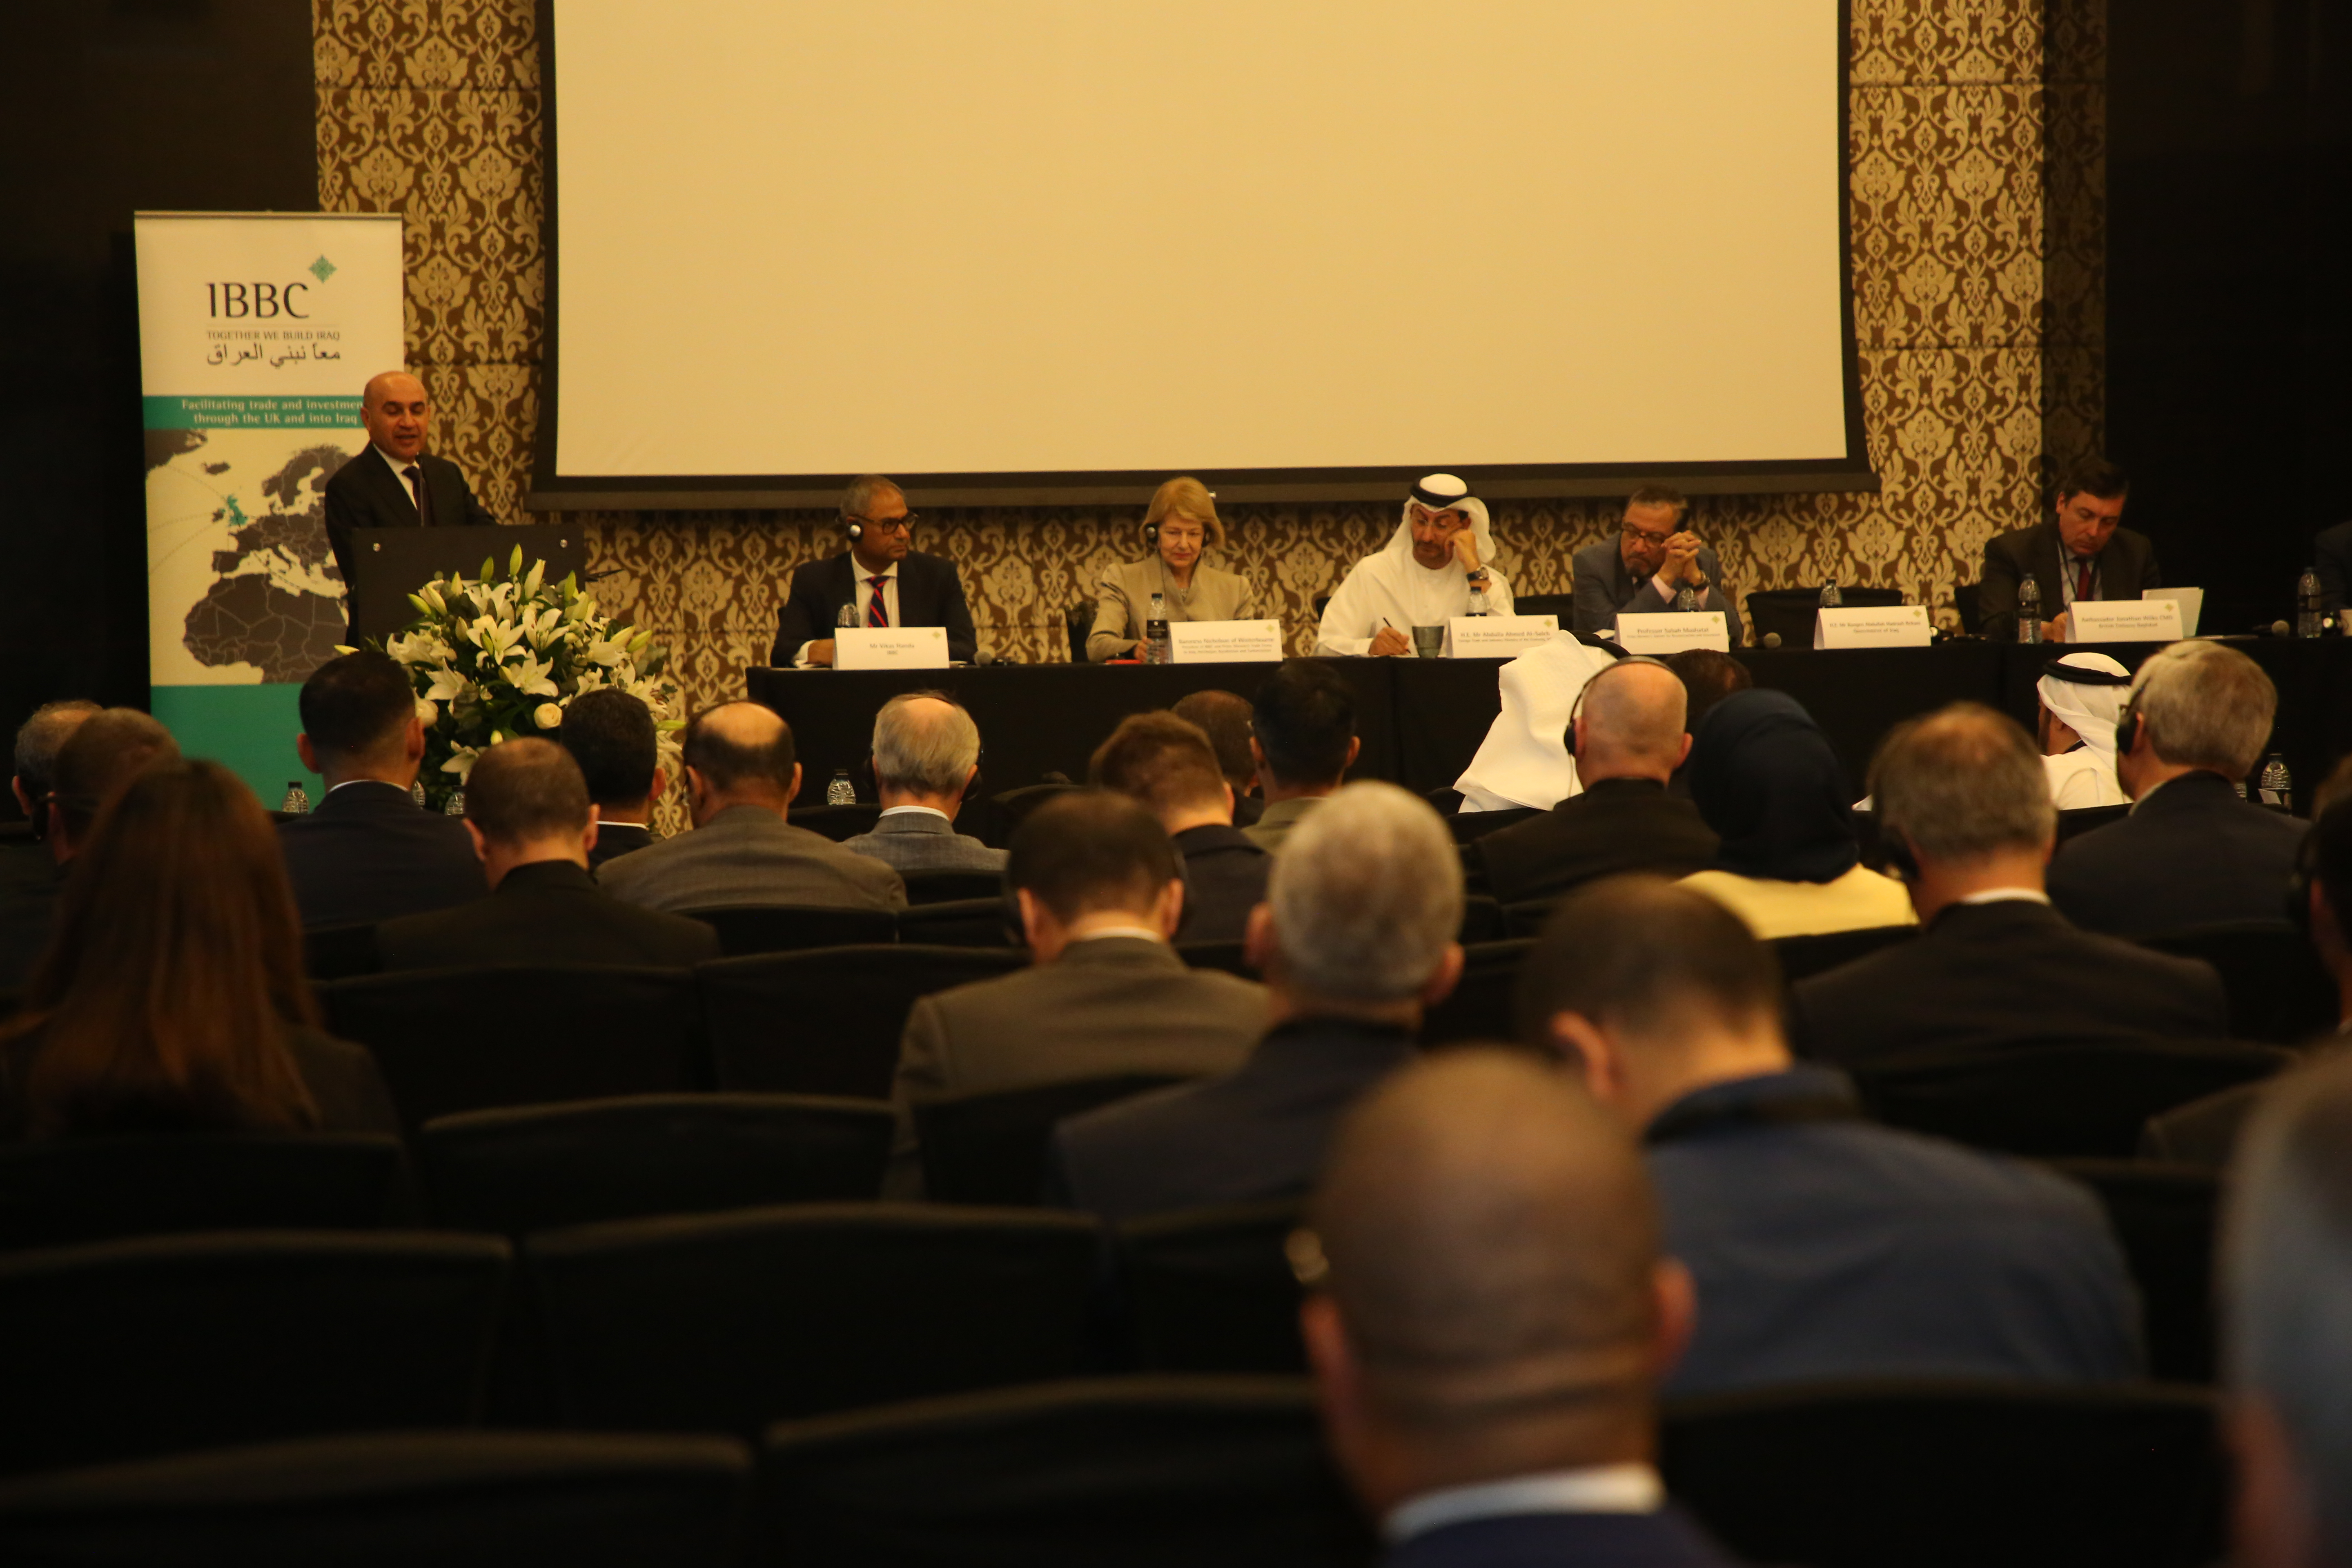 IBBC Autumn Conference in Dubai 25 Nov, Speakers Announced – Session 1 Logistics – Imports/Exports, People & Goods 6D9A1427